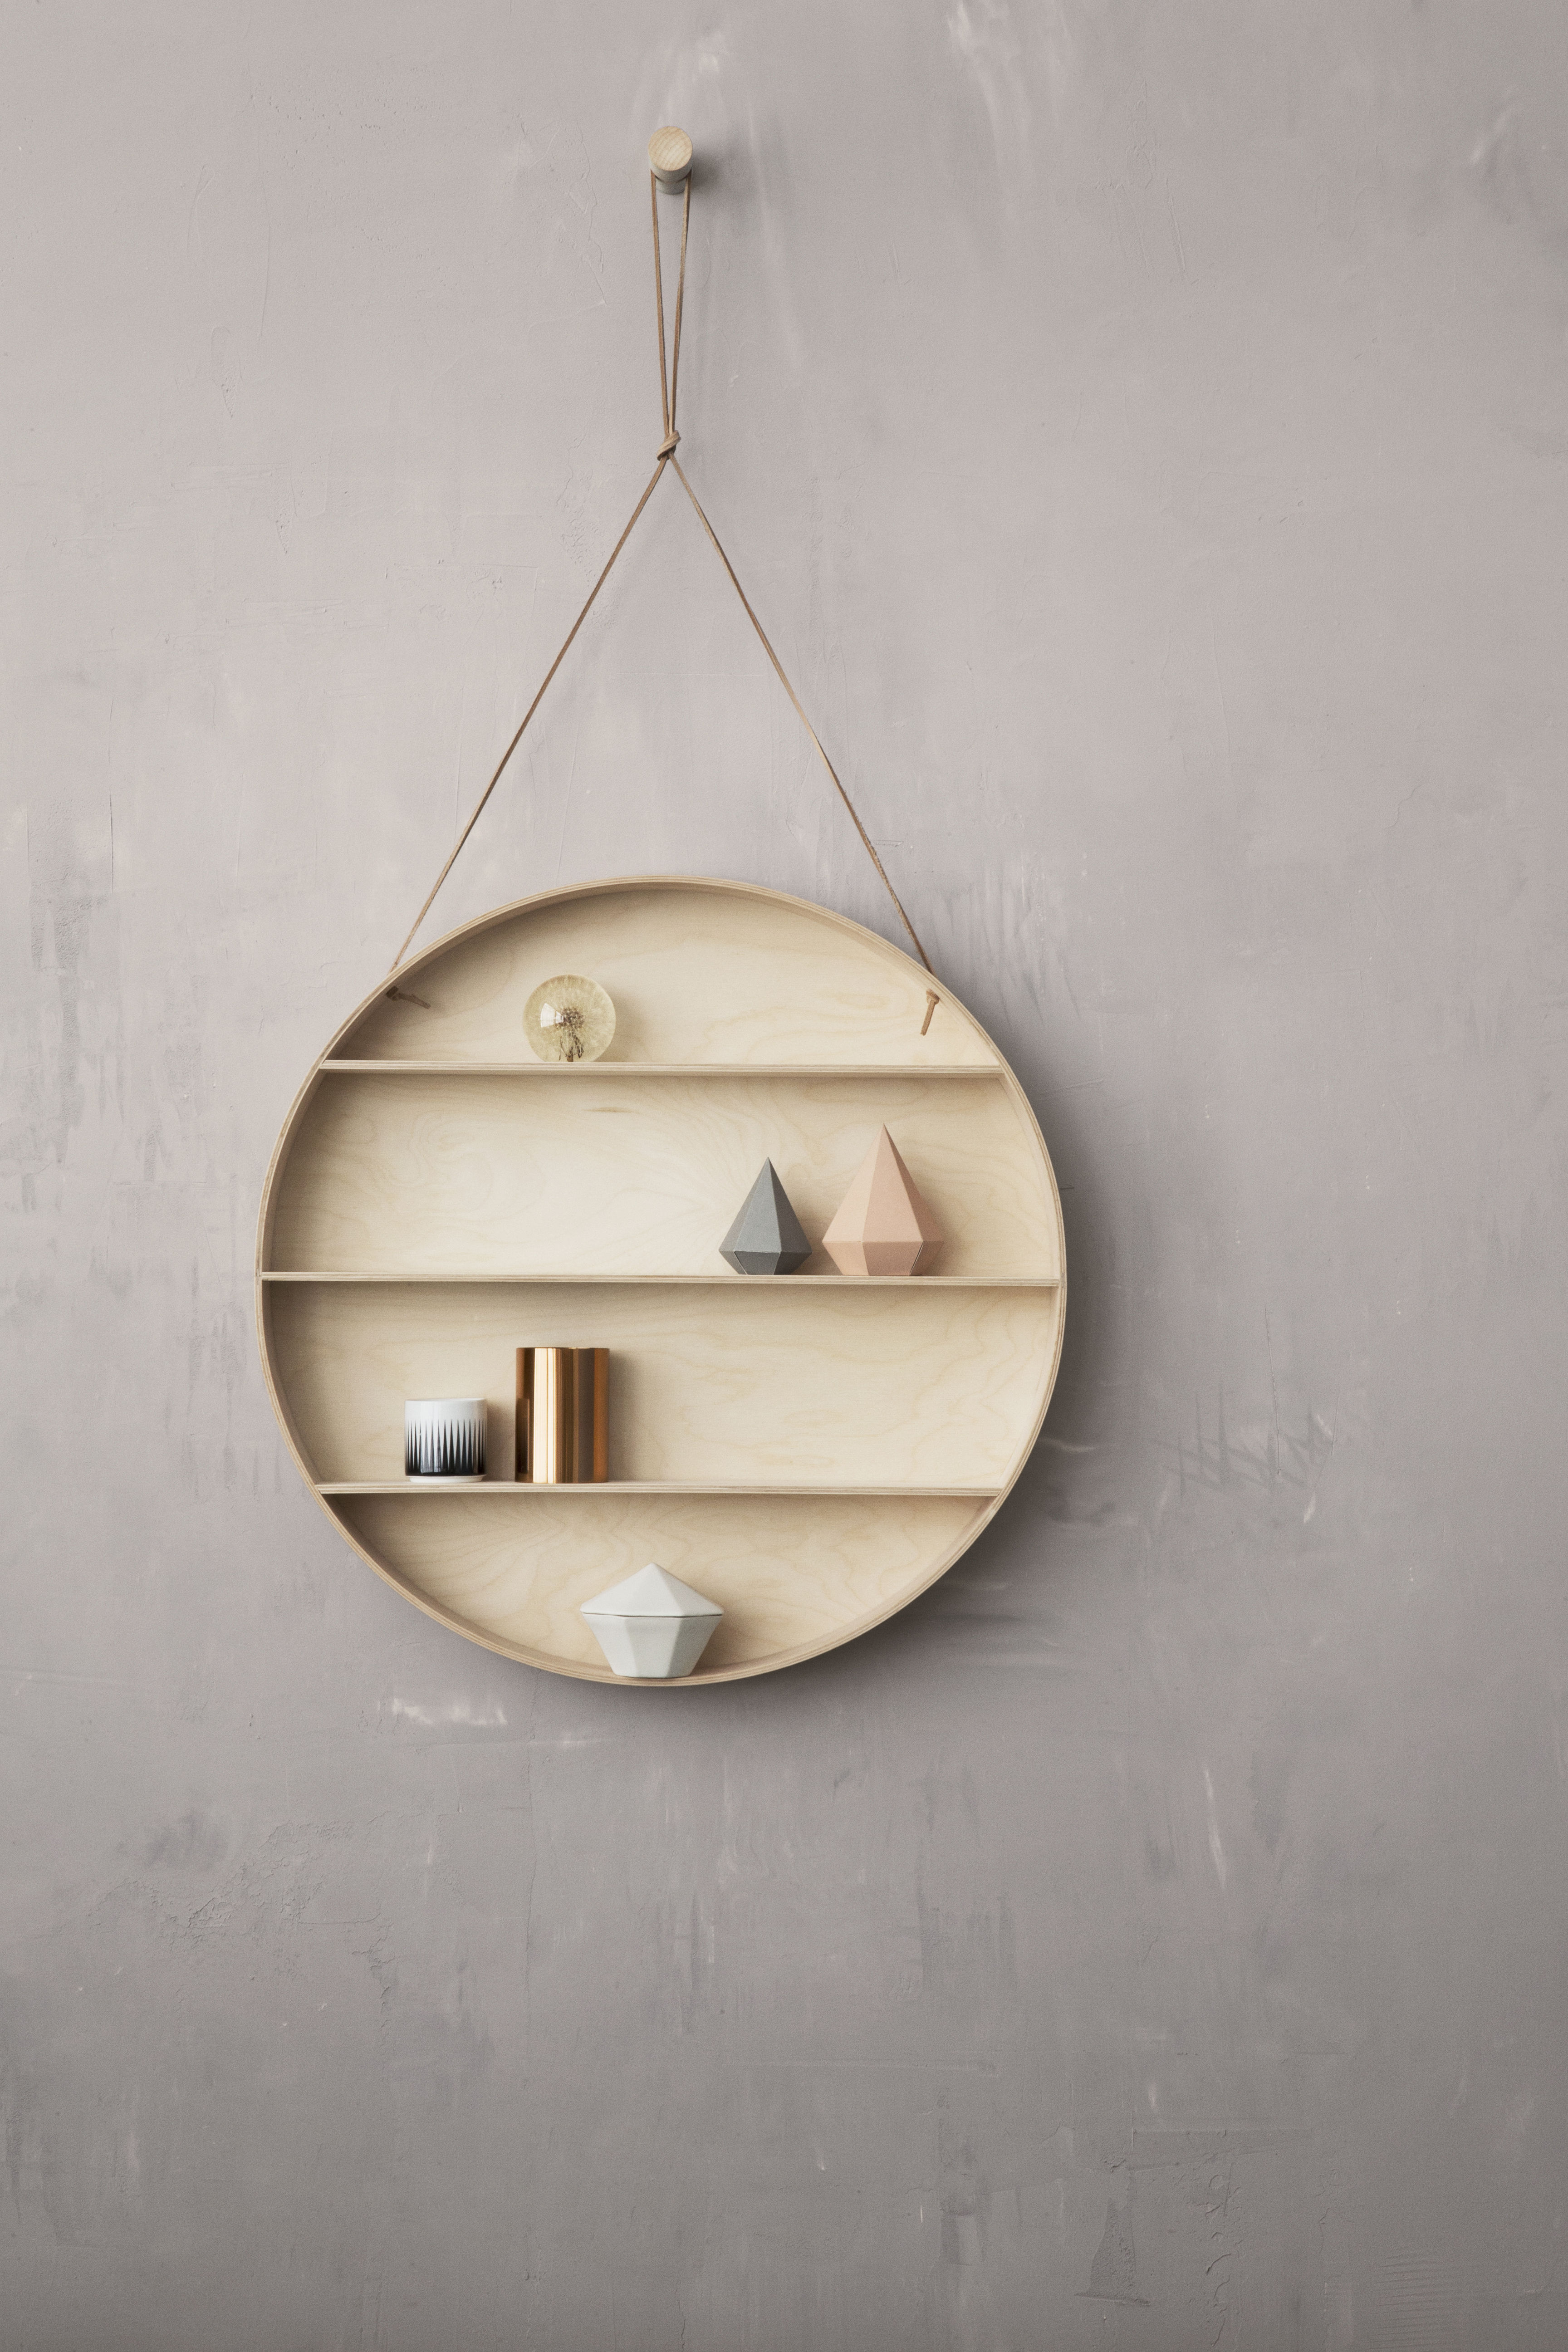 The round dorm shelf natural wood by ferm living - Etagere murale ronde ...